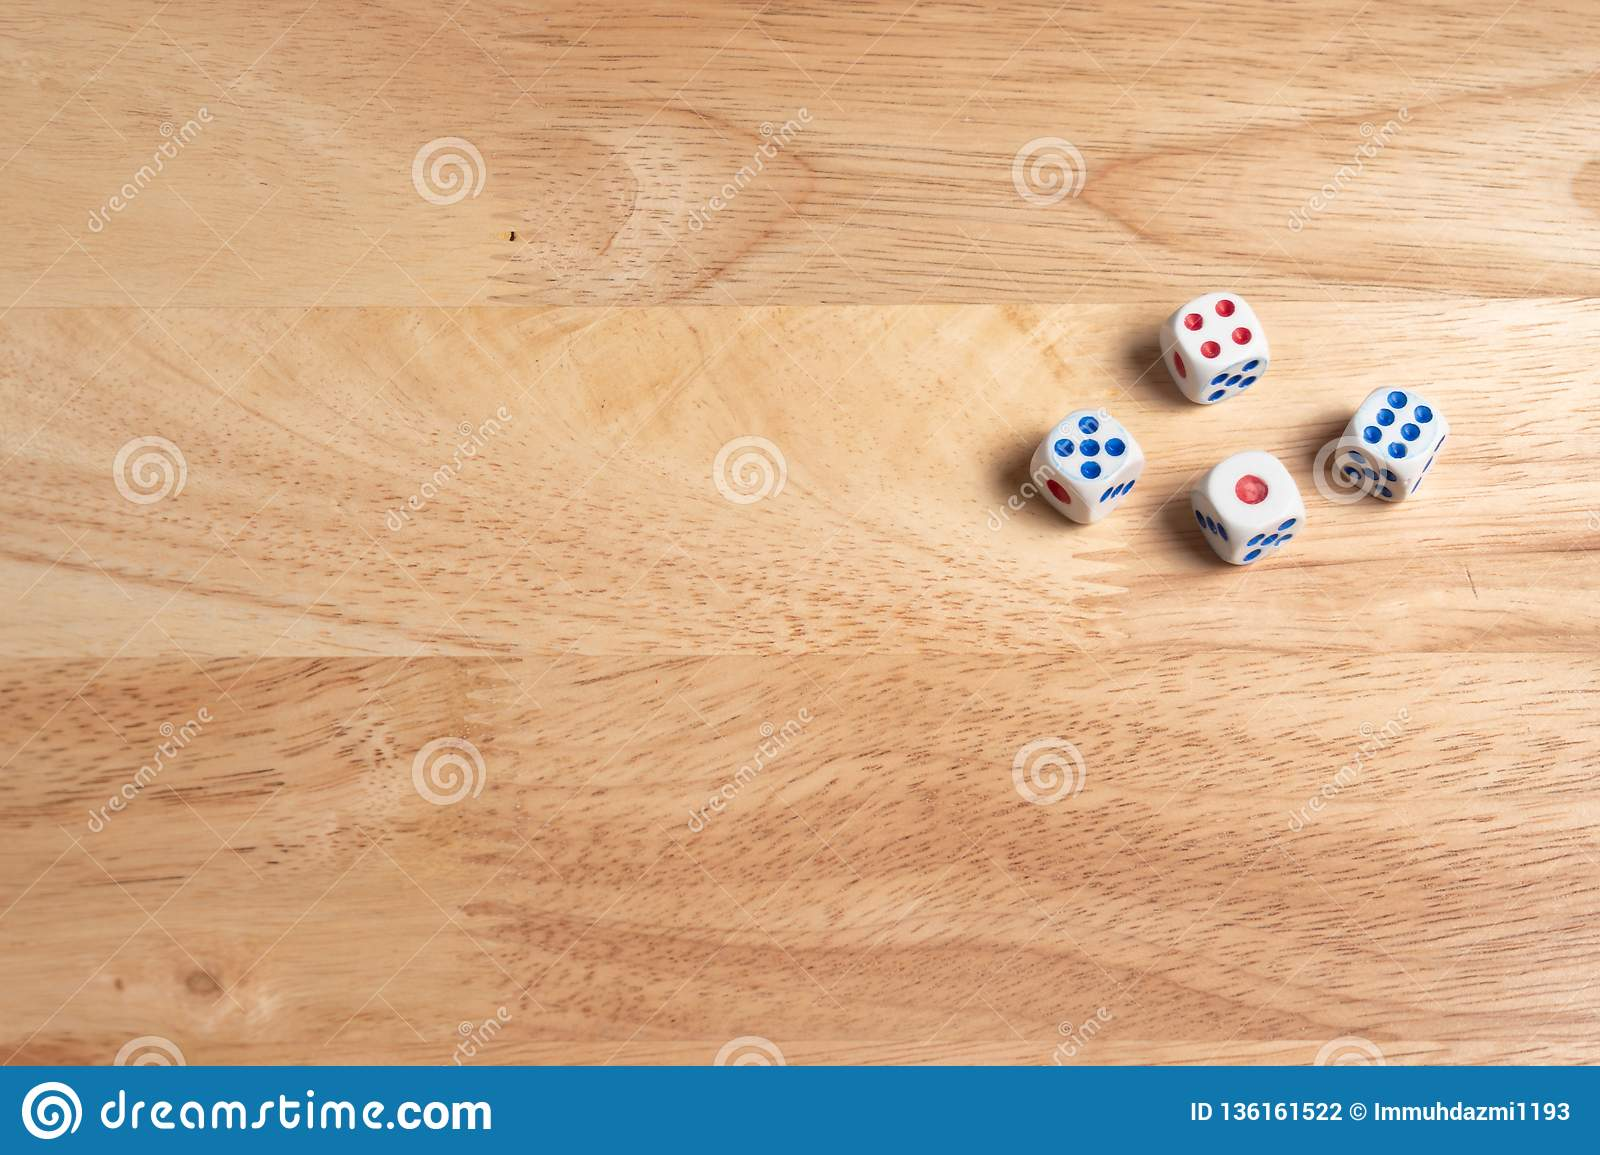 dices on wooden surface